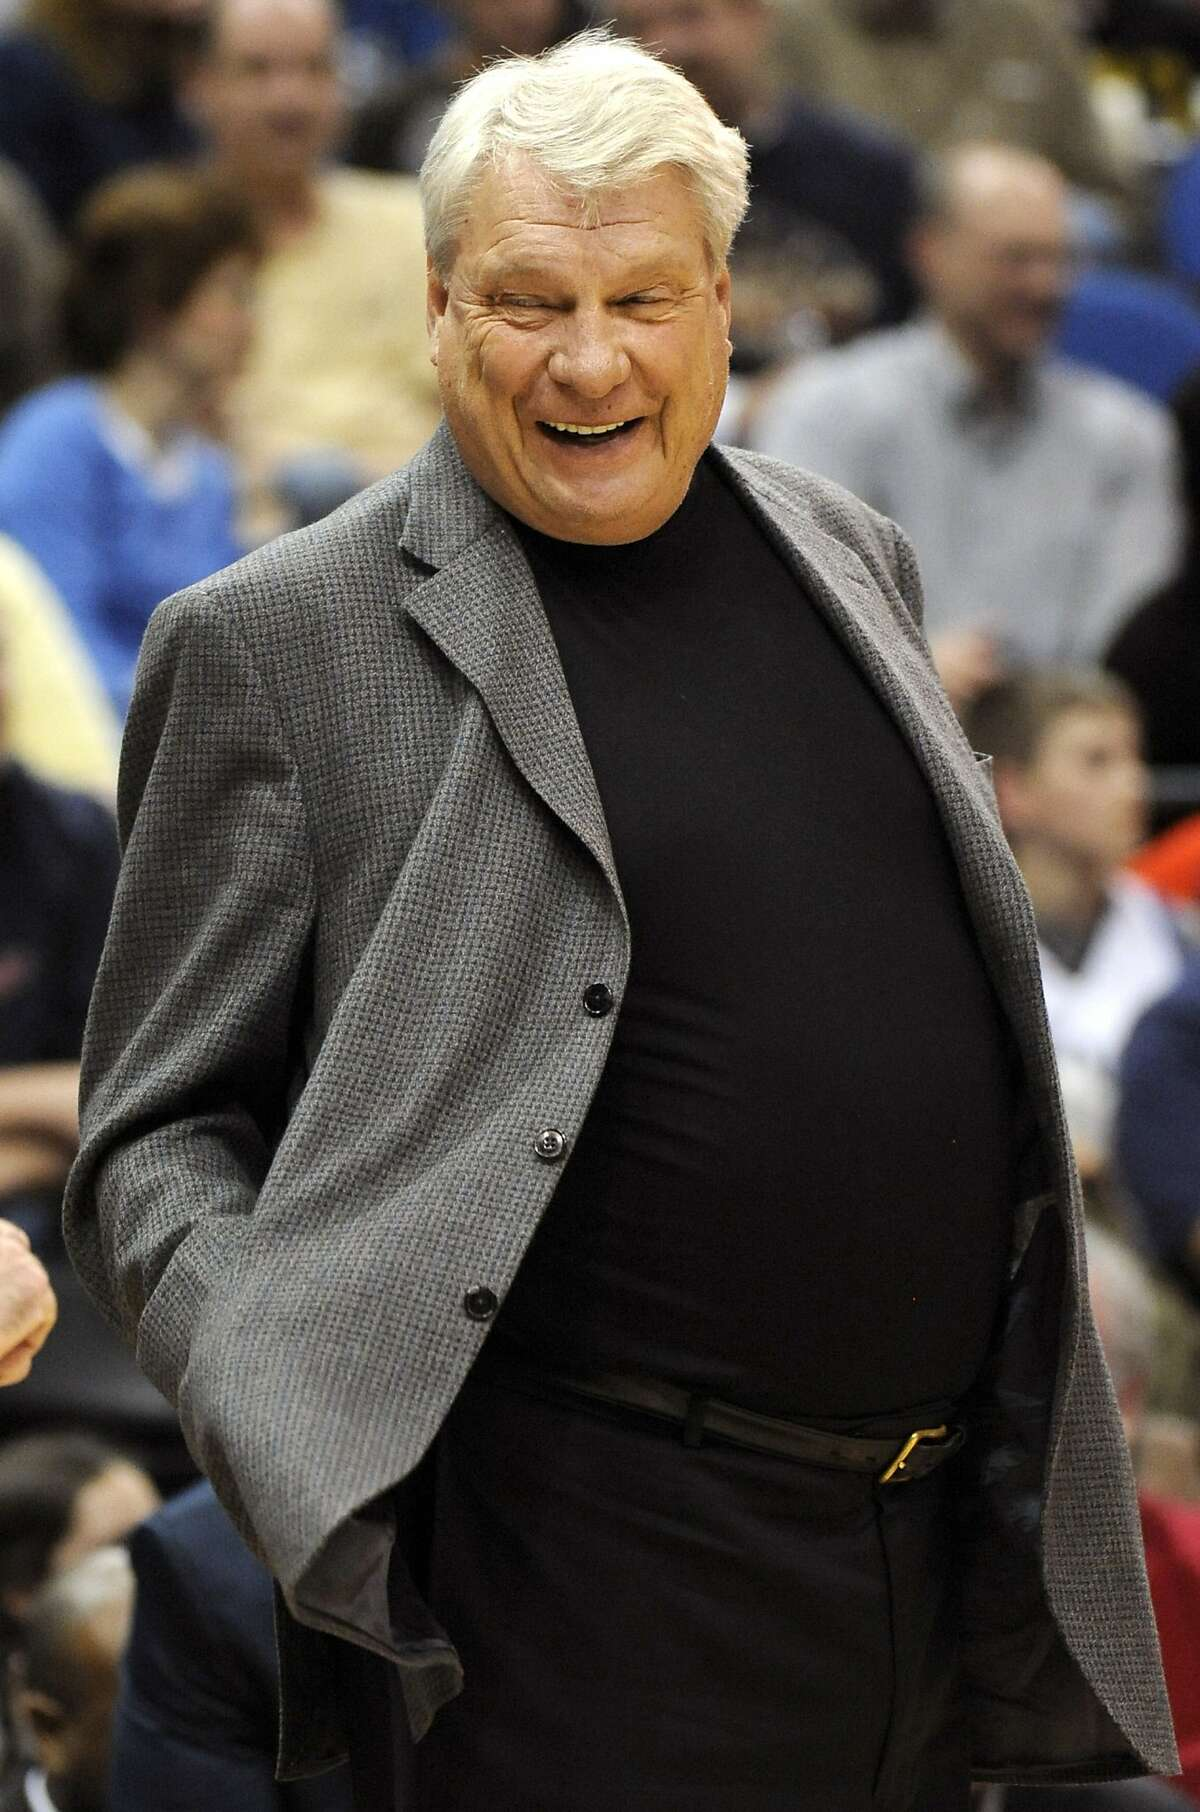 MINNESOTA, MN - FILE: Head coach Don Nelson of Golden State Warriors in the first half against the Minnesota Timberwolves during a basketball game at Target Center on April 7, 2010 in Minneapolis, Minnesota. It was reported that head coach Don Nelson was elected to the Basketball Hall of Fame April 2, 2012. (Photo by Hannah Foslien /Getty Images)